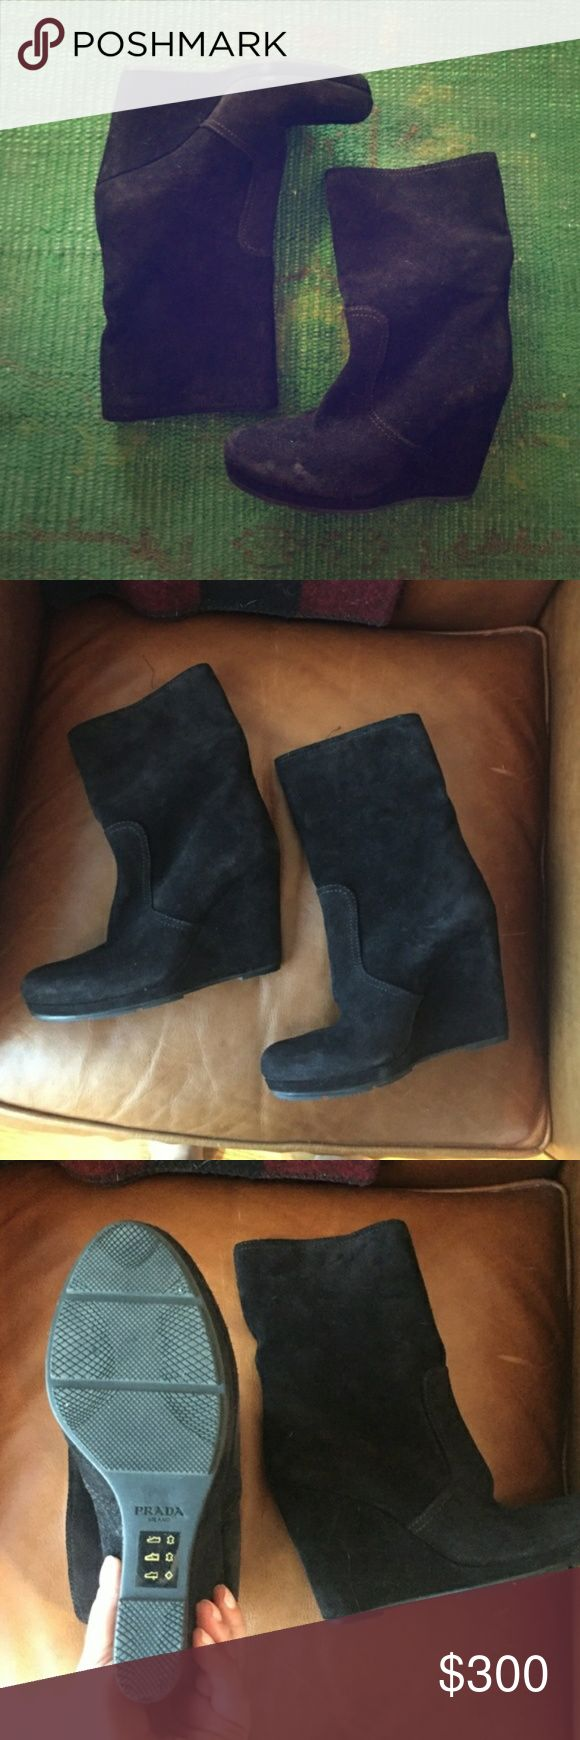 Prada black suede booties nwot Opened to offers.   Originally was going to trade another posher, but it fell through... So opened to trades too! Prada Shoes Ankle Boots & Booties